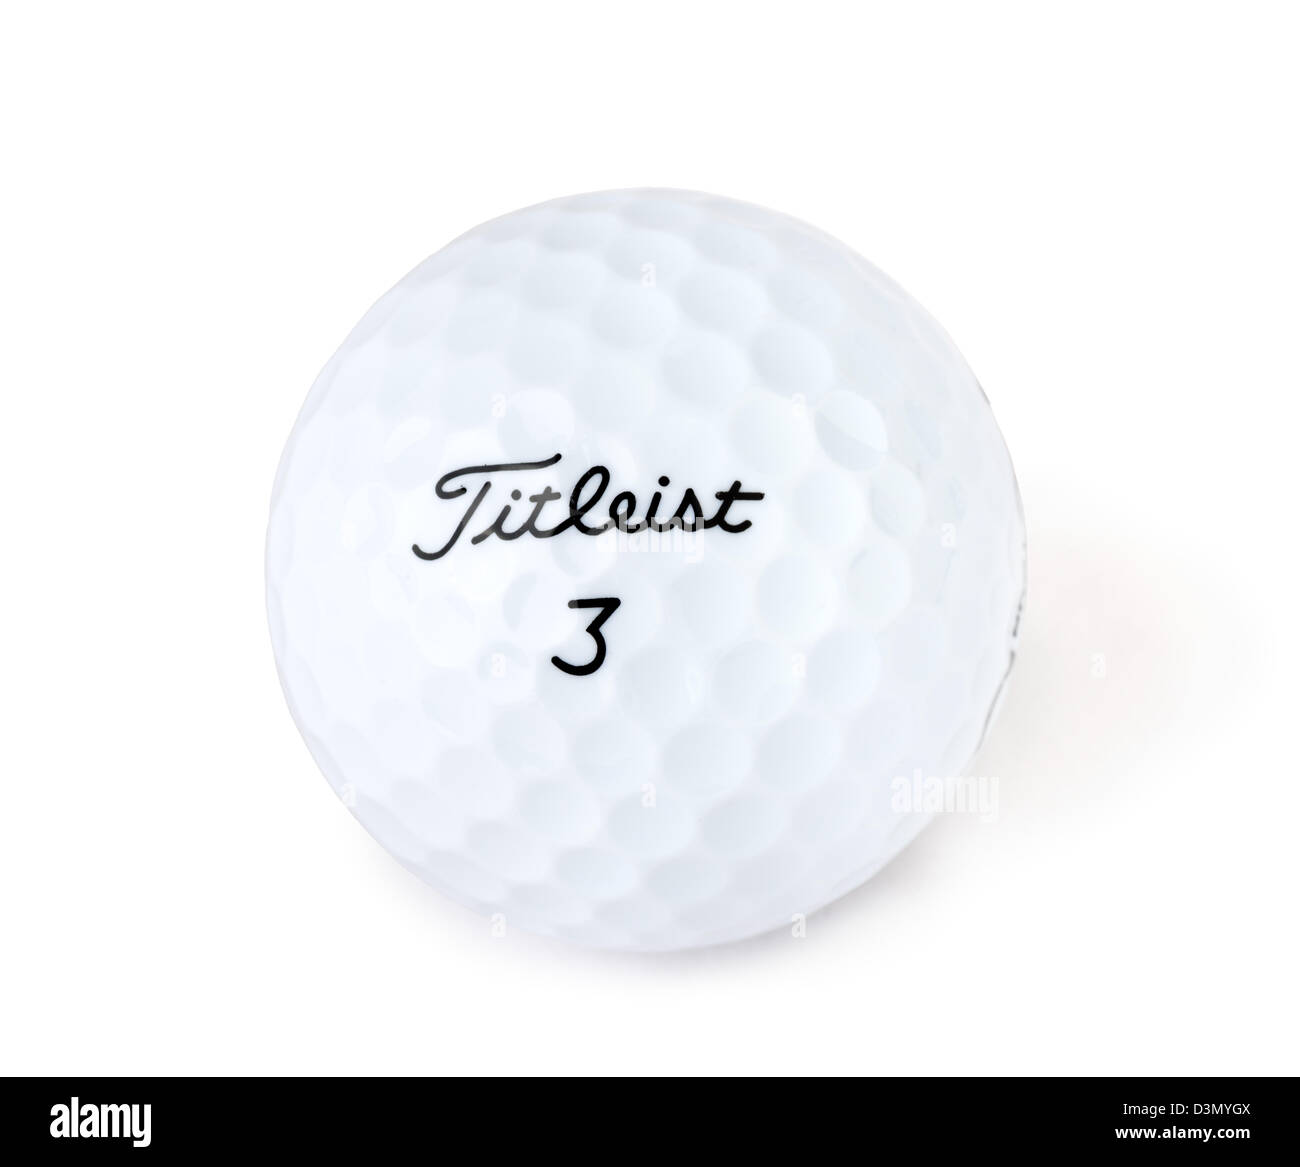 Titleist Golf Ball - Stock Image